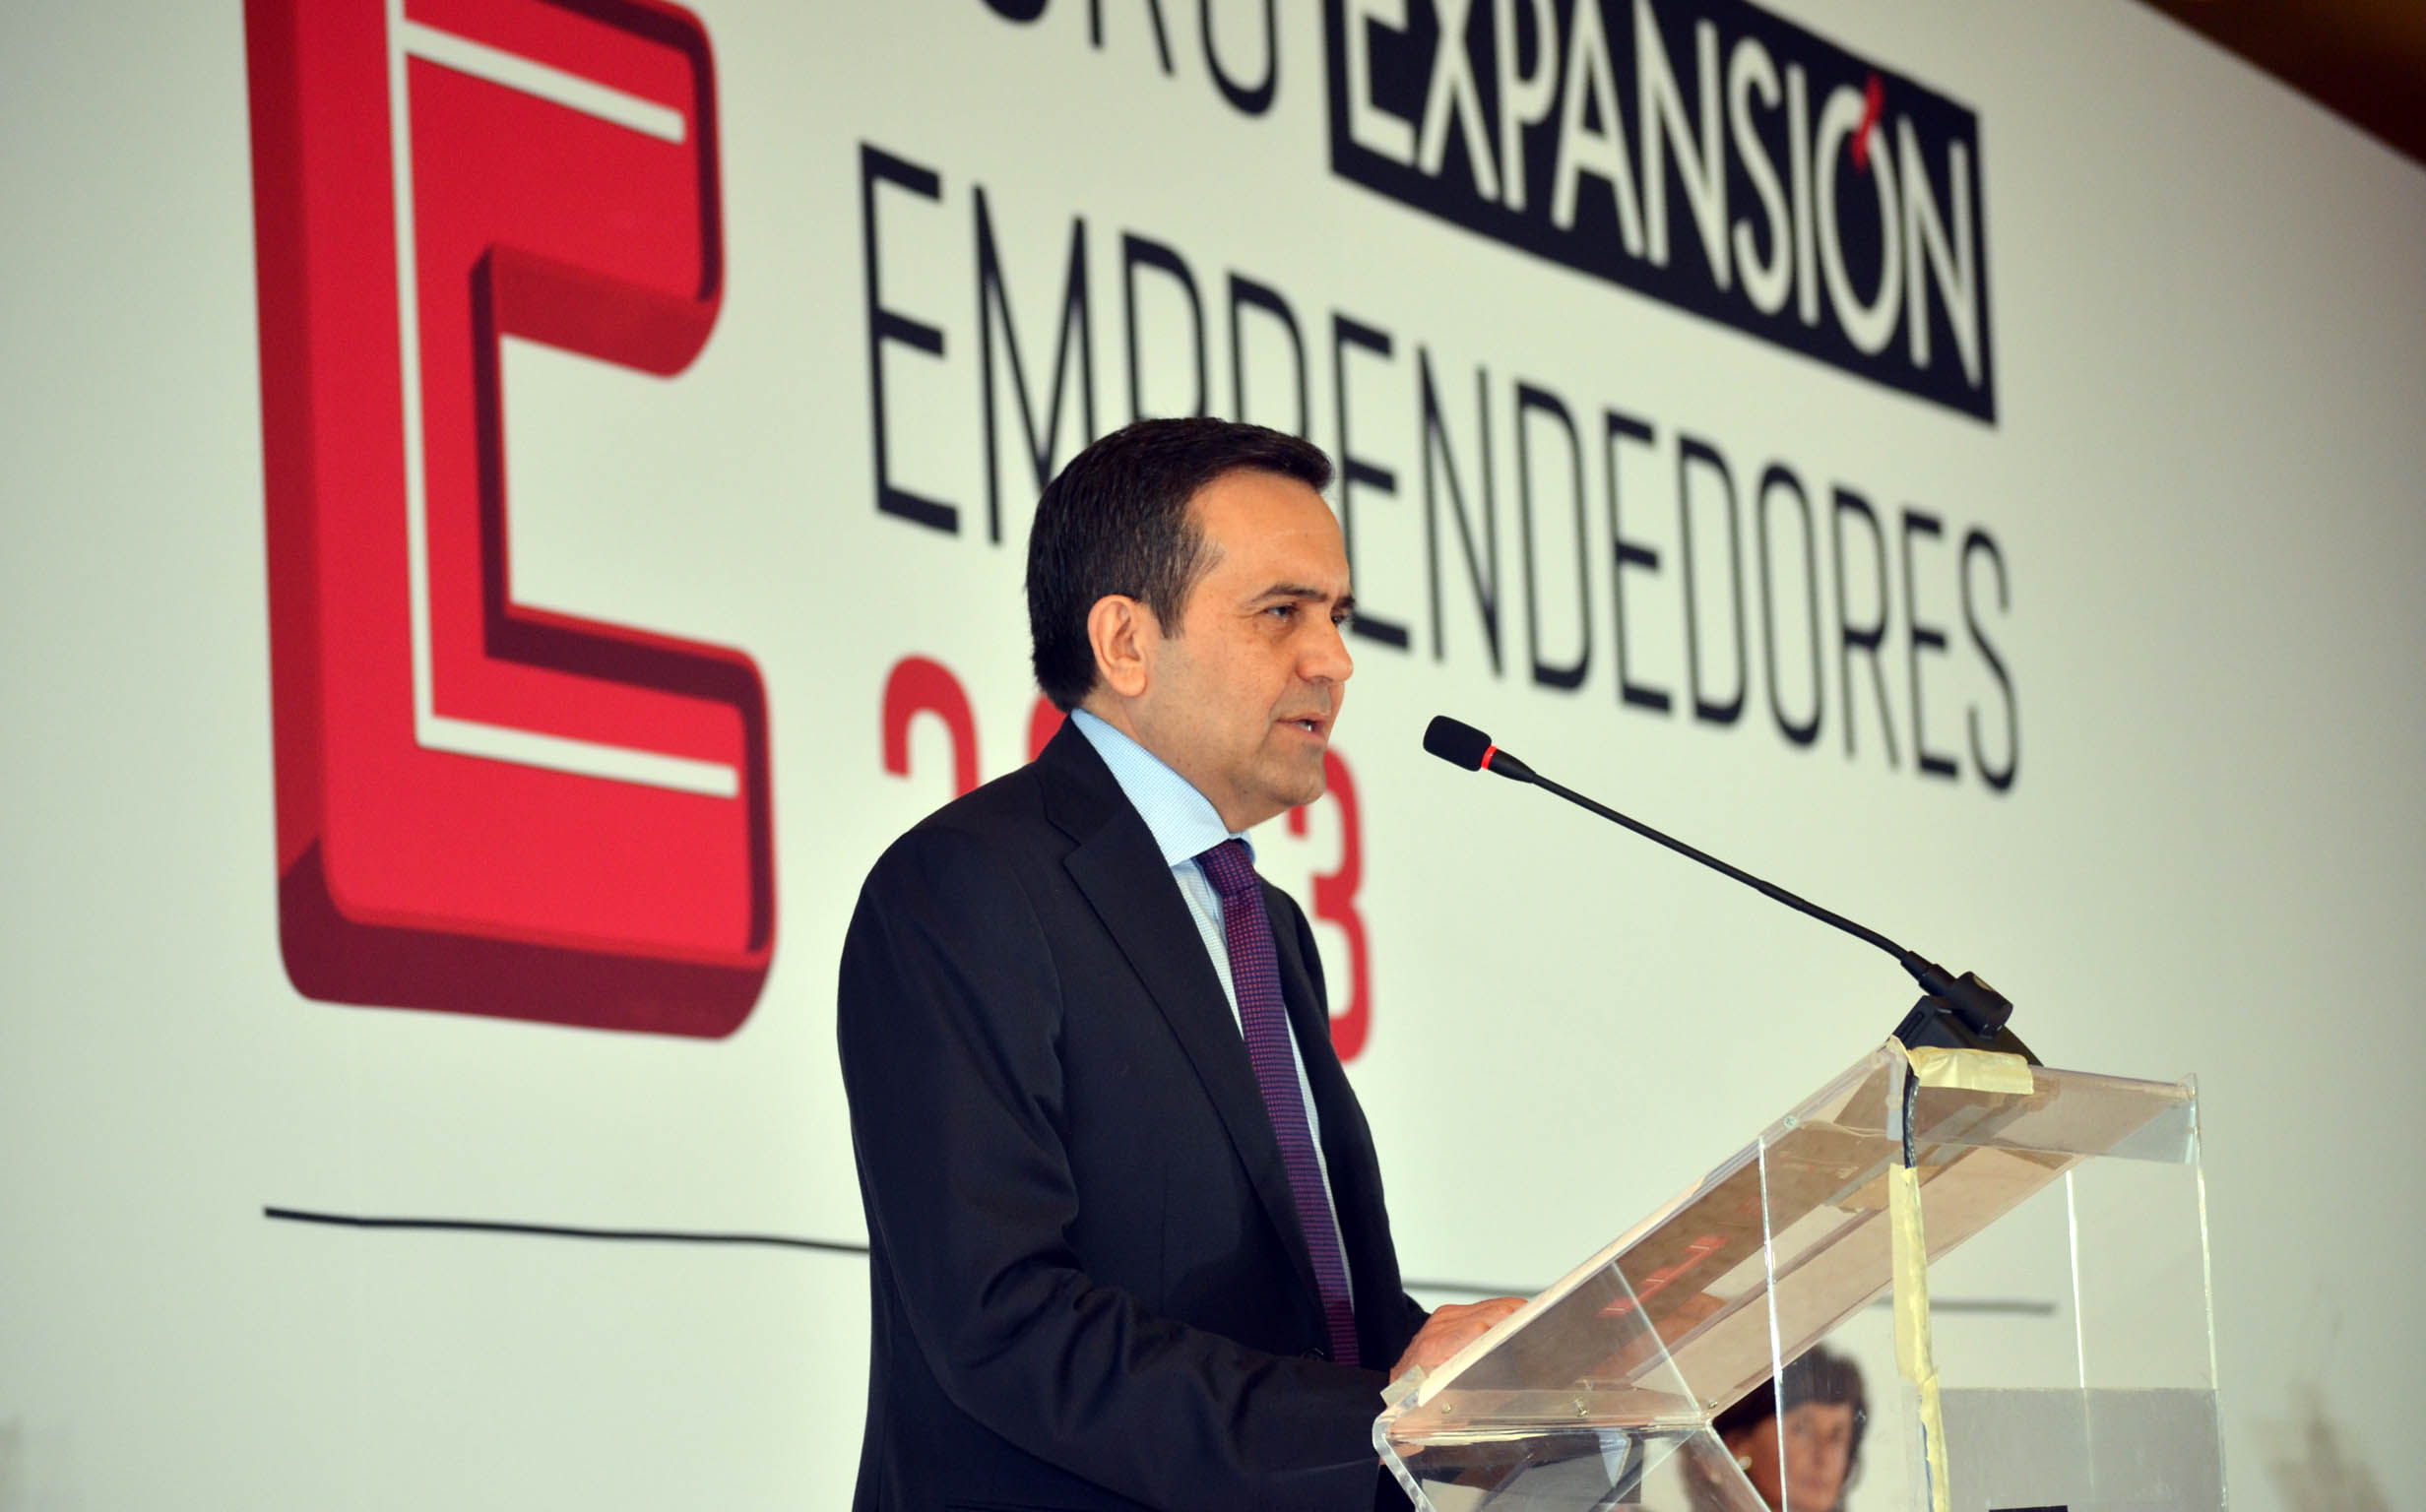 Foro emprendedores expansin 7